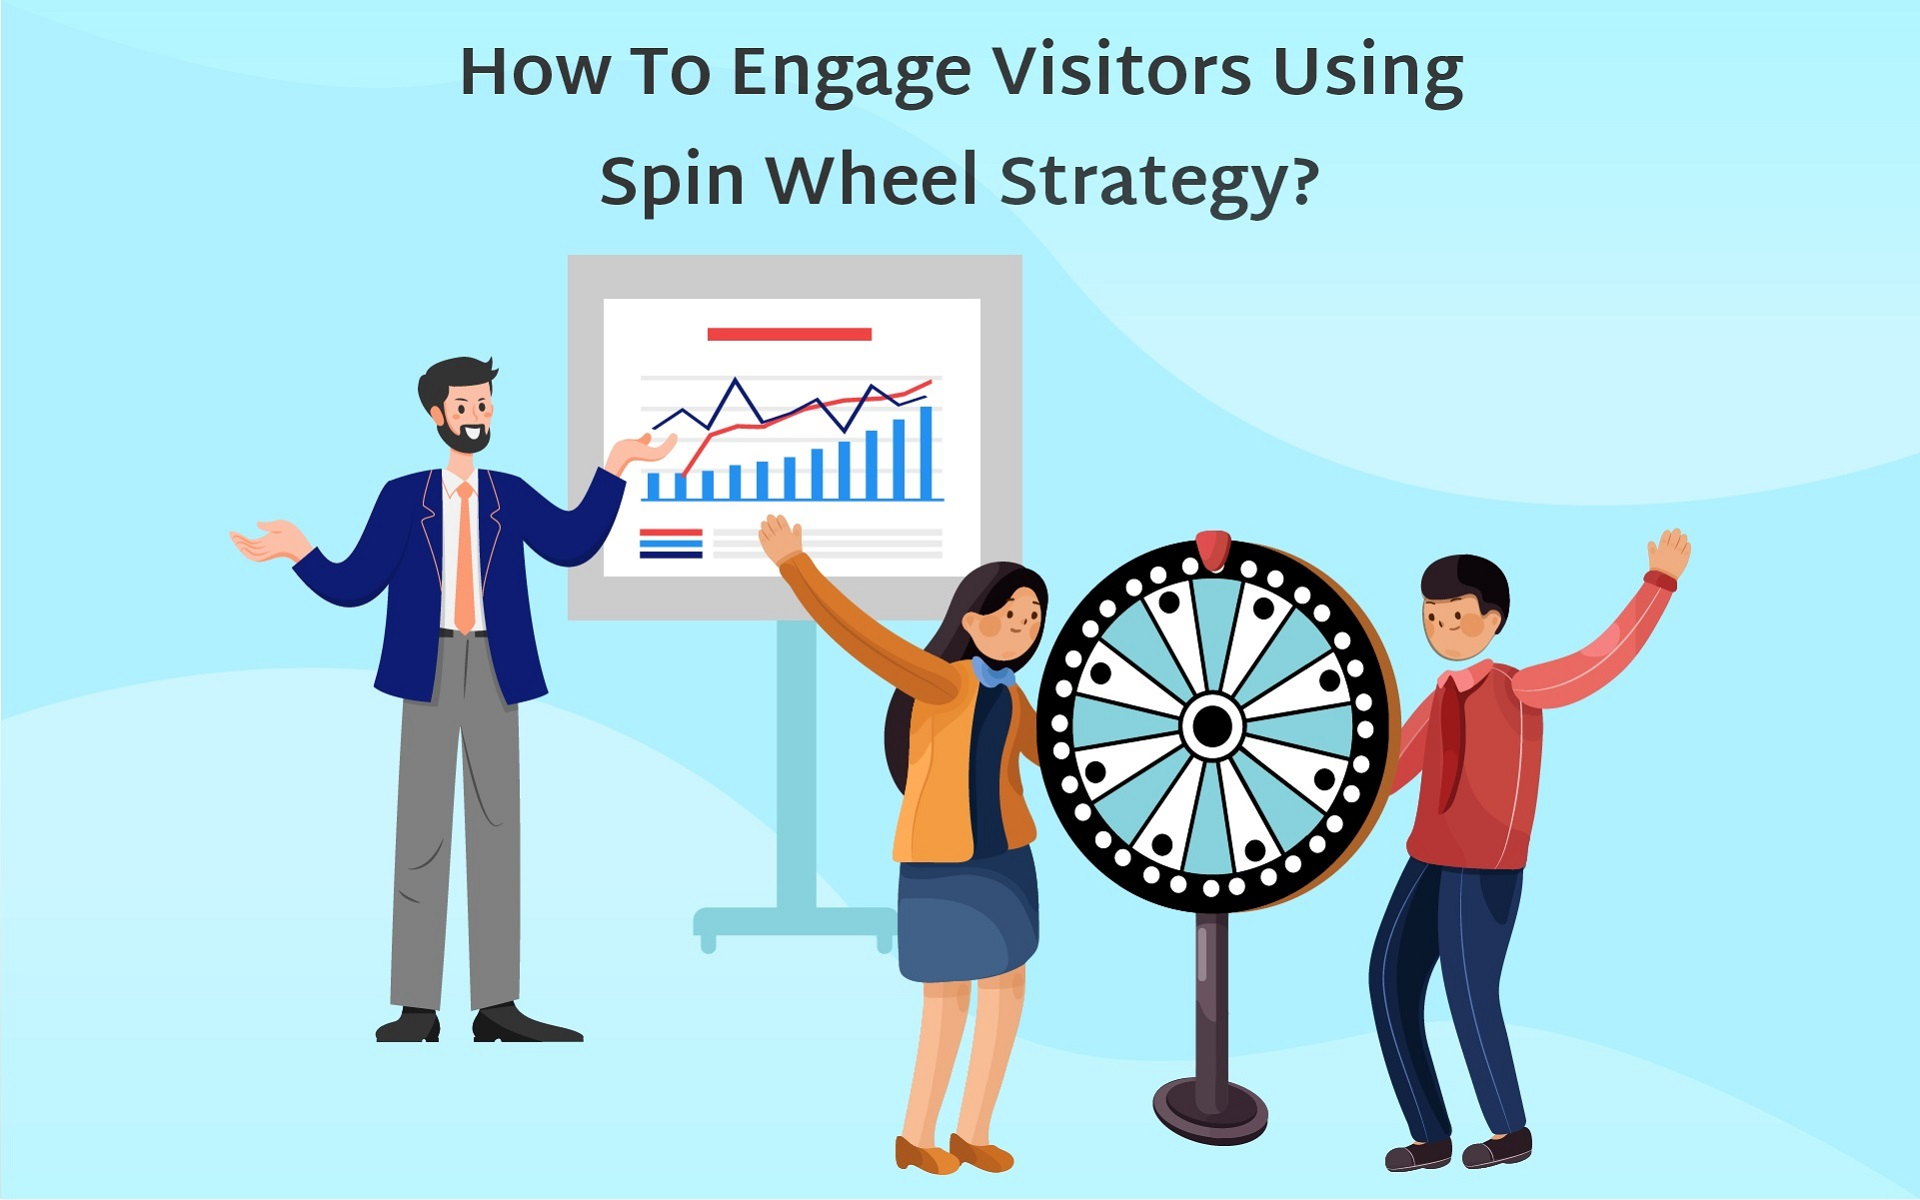 How to Engage Visitors using Spin Wheel Strategy